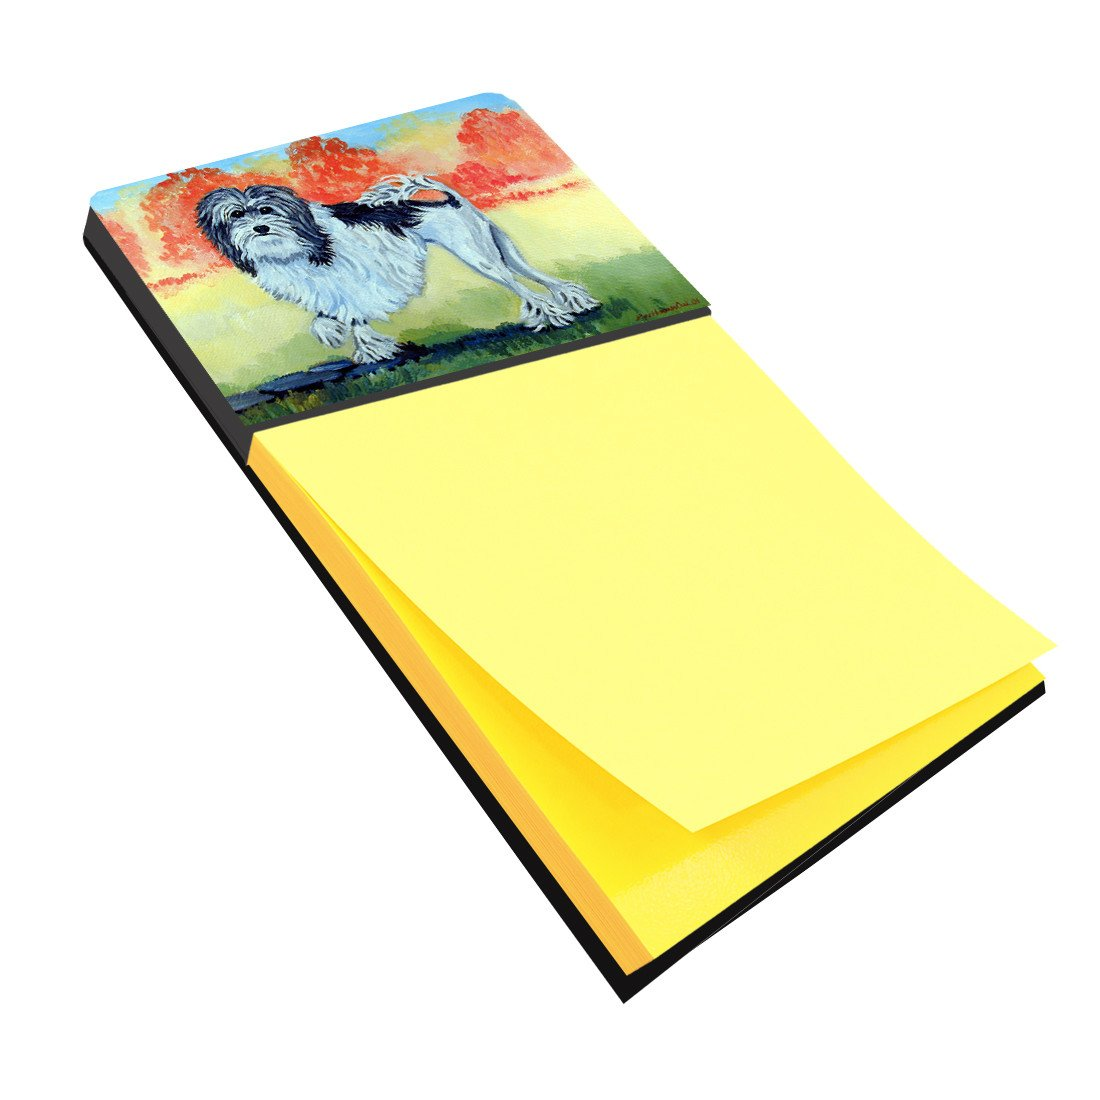 Lowchen Refiillable Sticky Note Holder or Postit Note Dispenser 7510SN by Caroline's Treasures